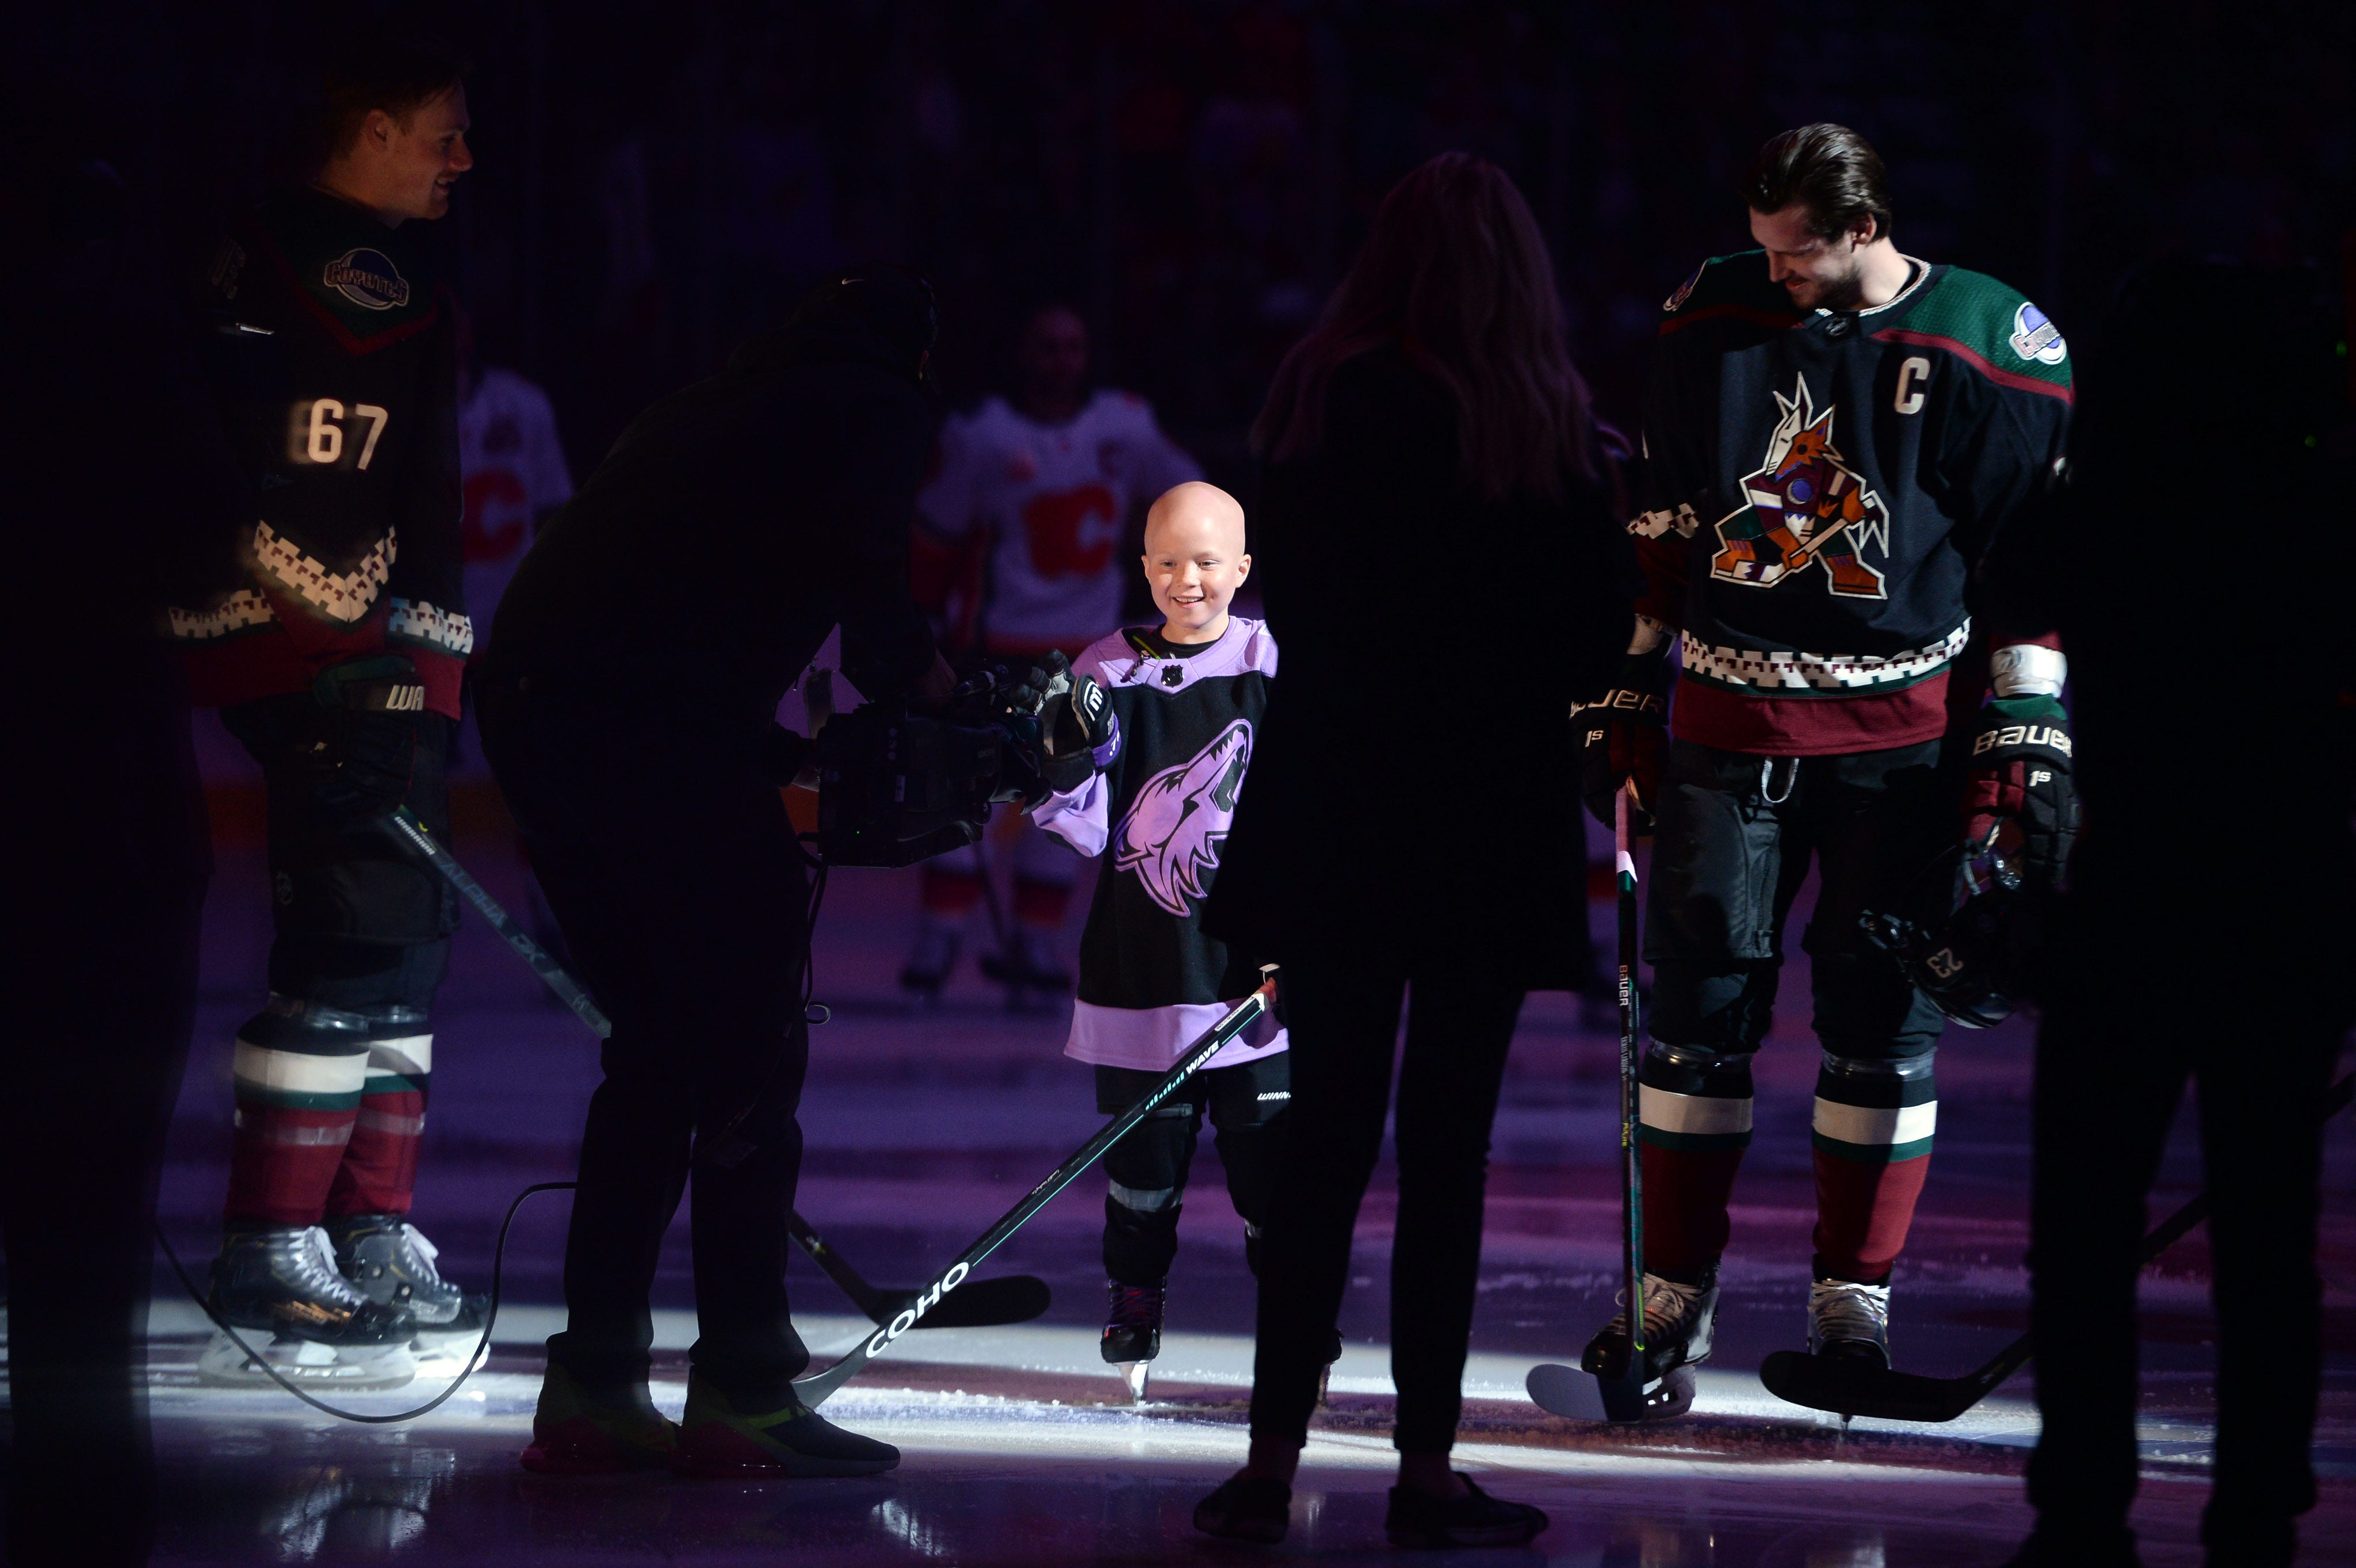 Arizona Coyotes honor 9-year-old who died of cancer with historic tribute